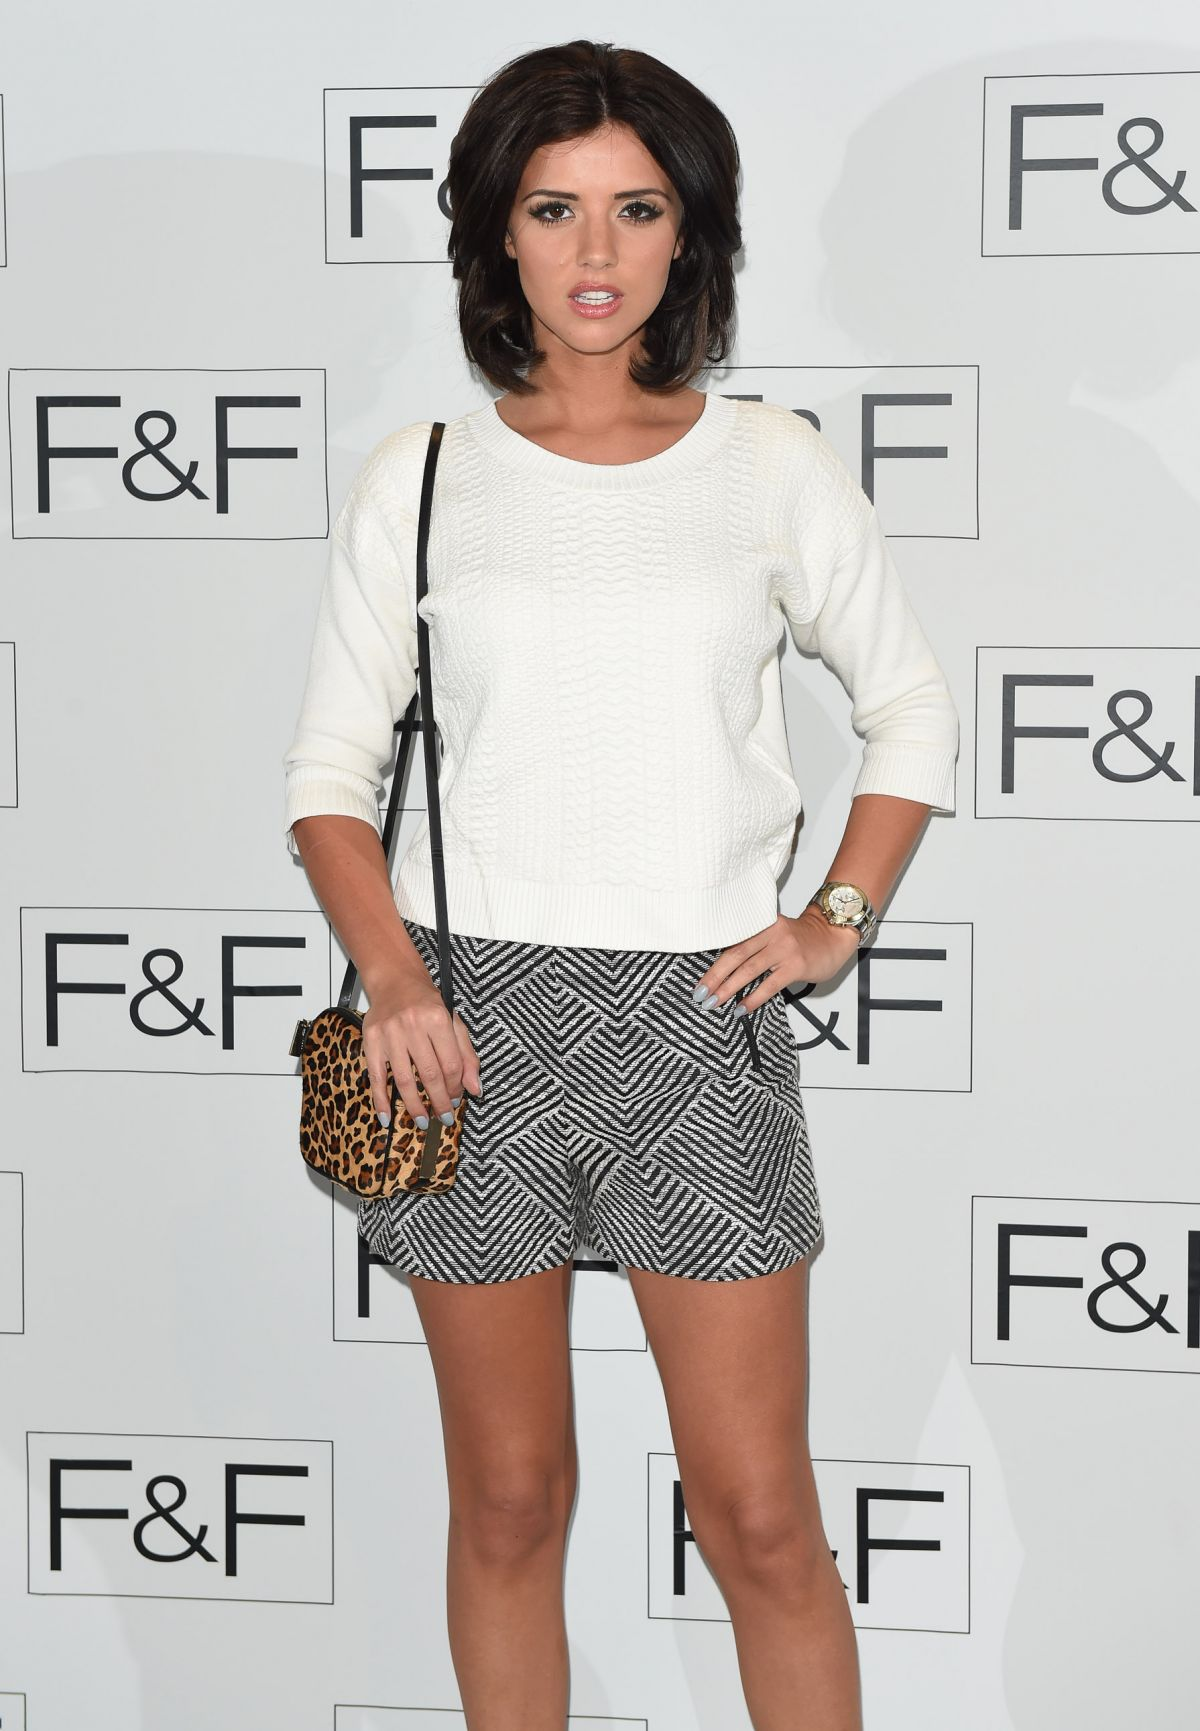 LUCY MECKLENBURGH at F&F 2014 Fashion Show in London